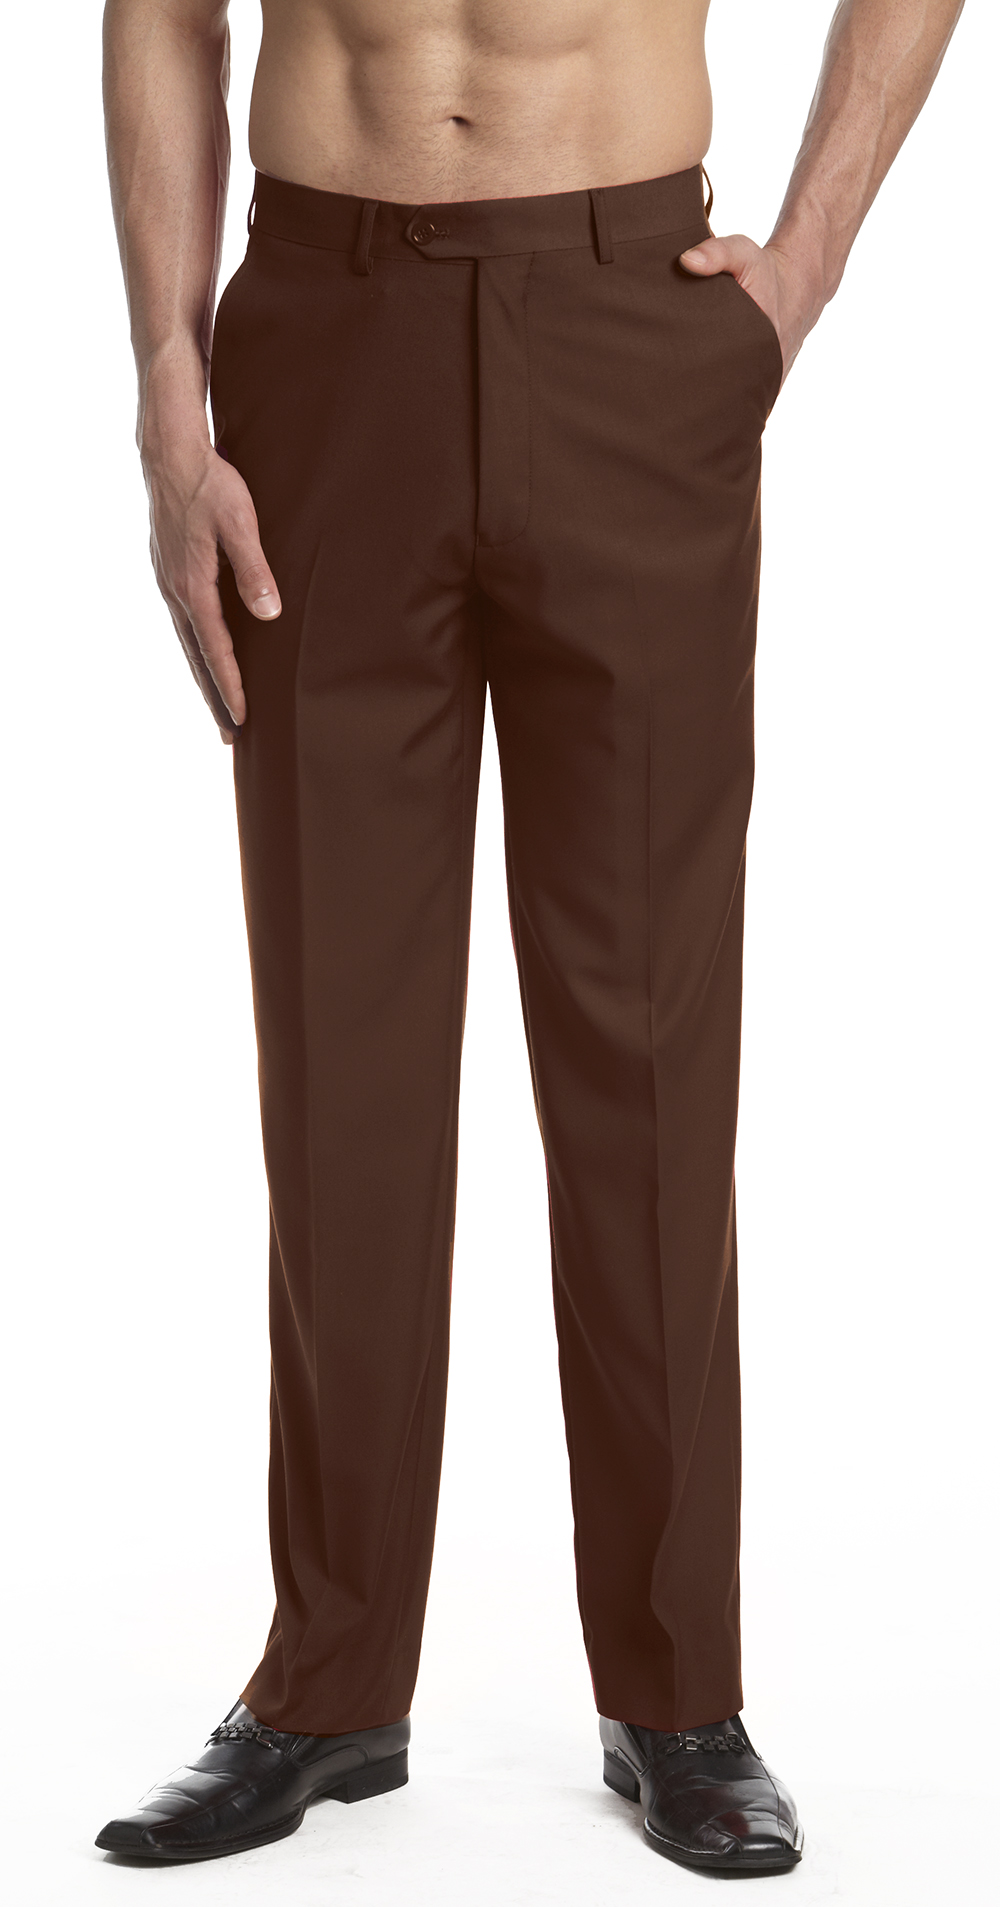 Our collection of dress pants is made up of three classic styles designed to flatter you in all the right places. Available in a host of have-to-have colors and prints, getting dressed in .